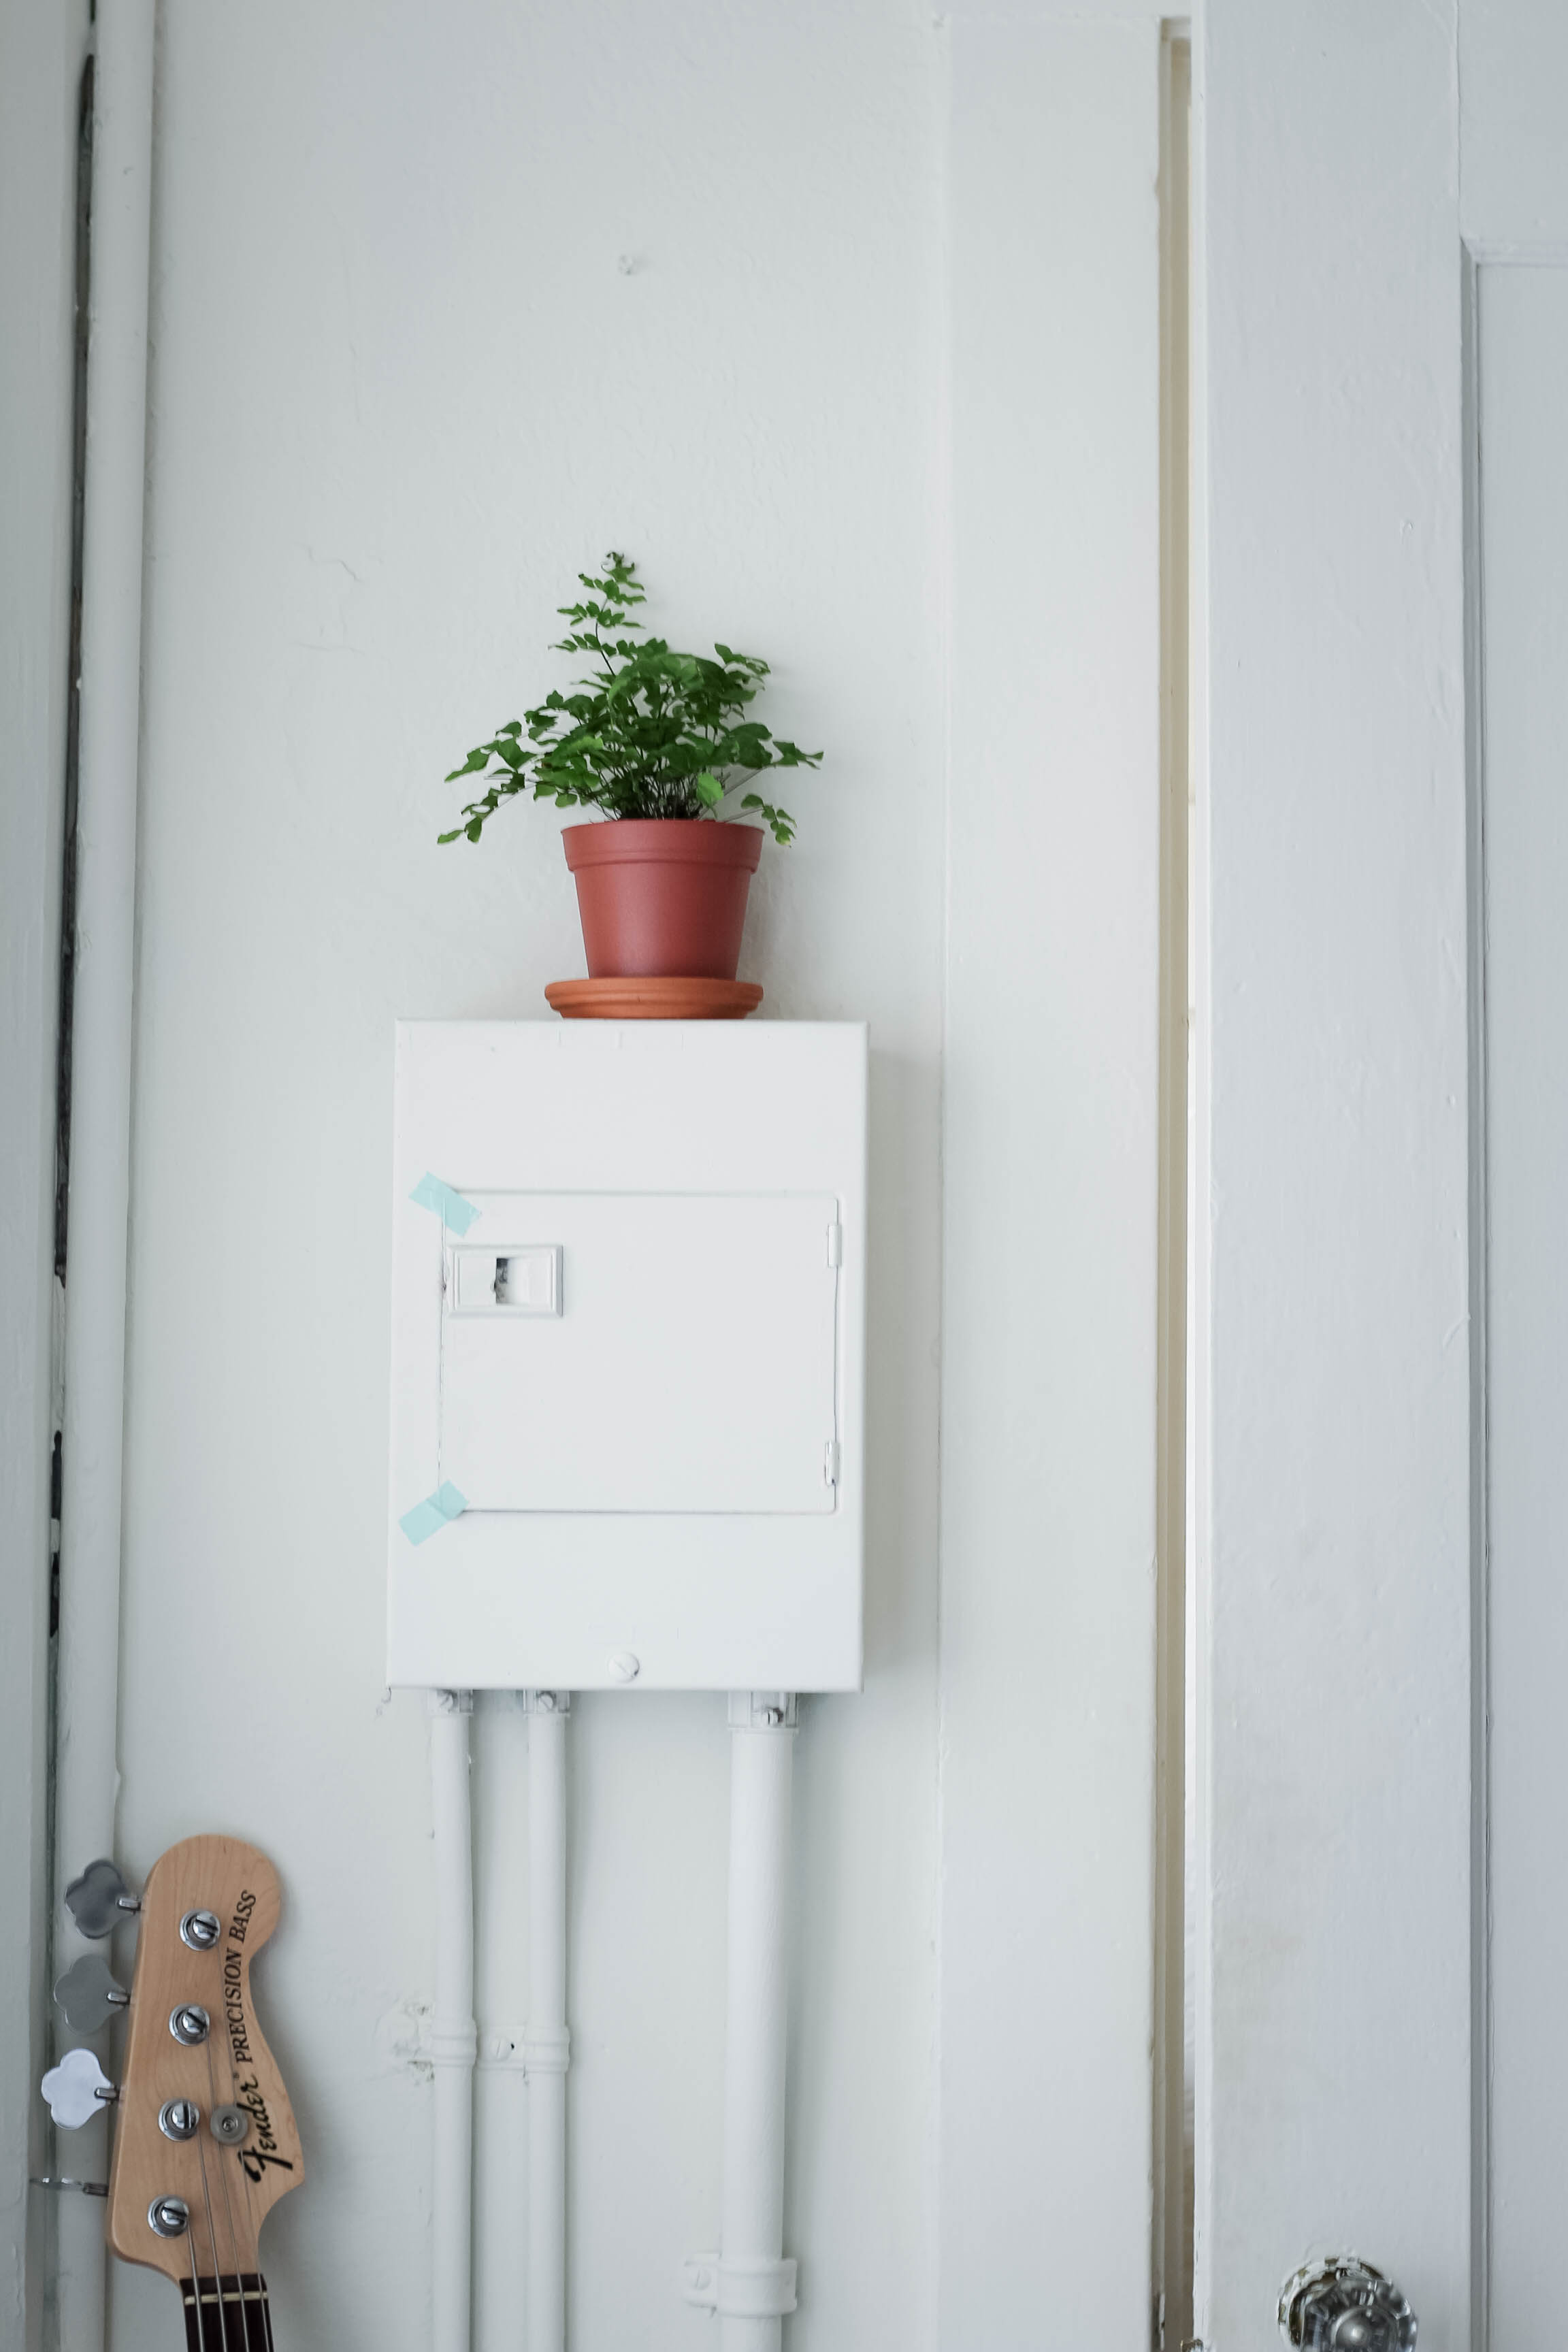 decorating with plants in a studio apartment | tintedgreen